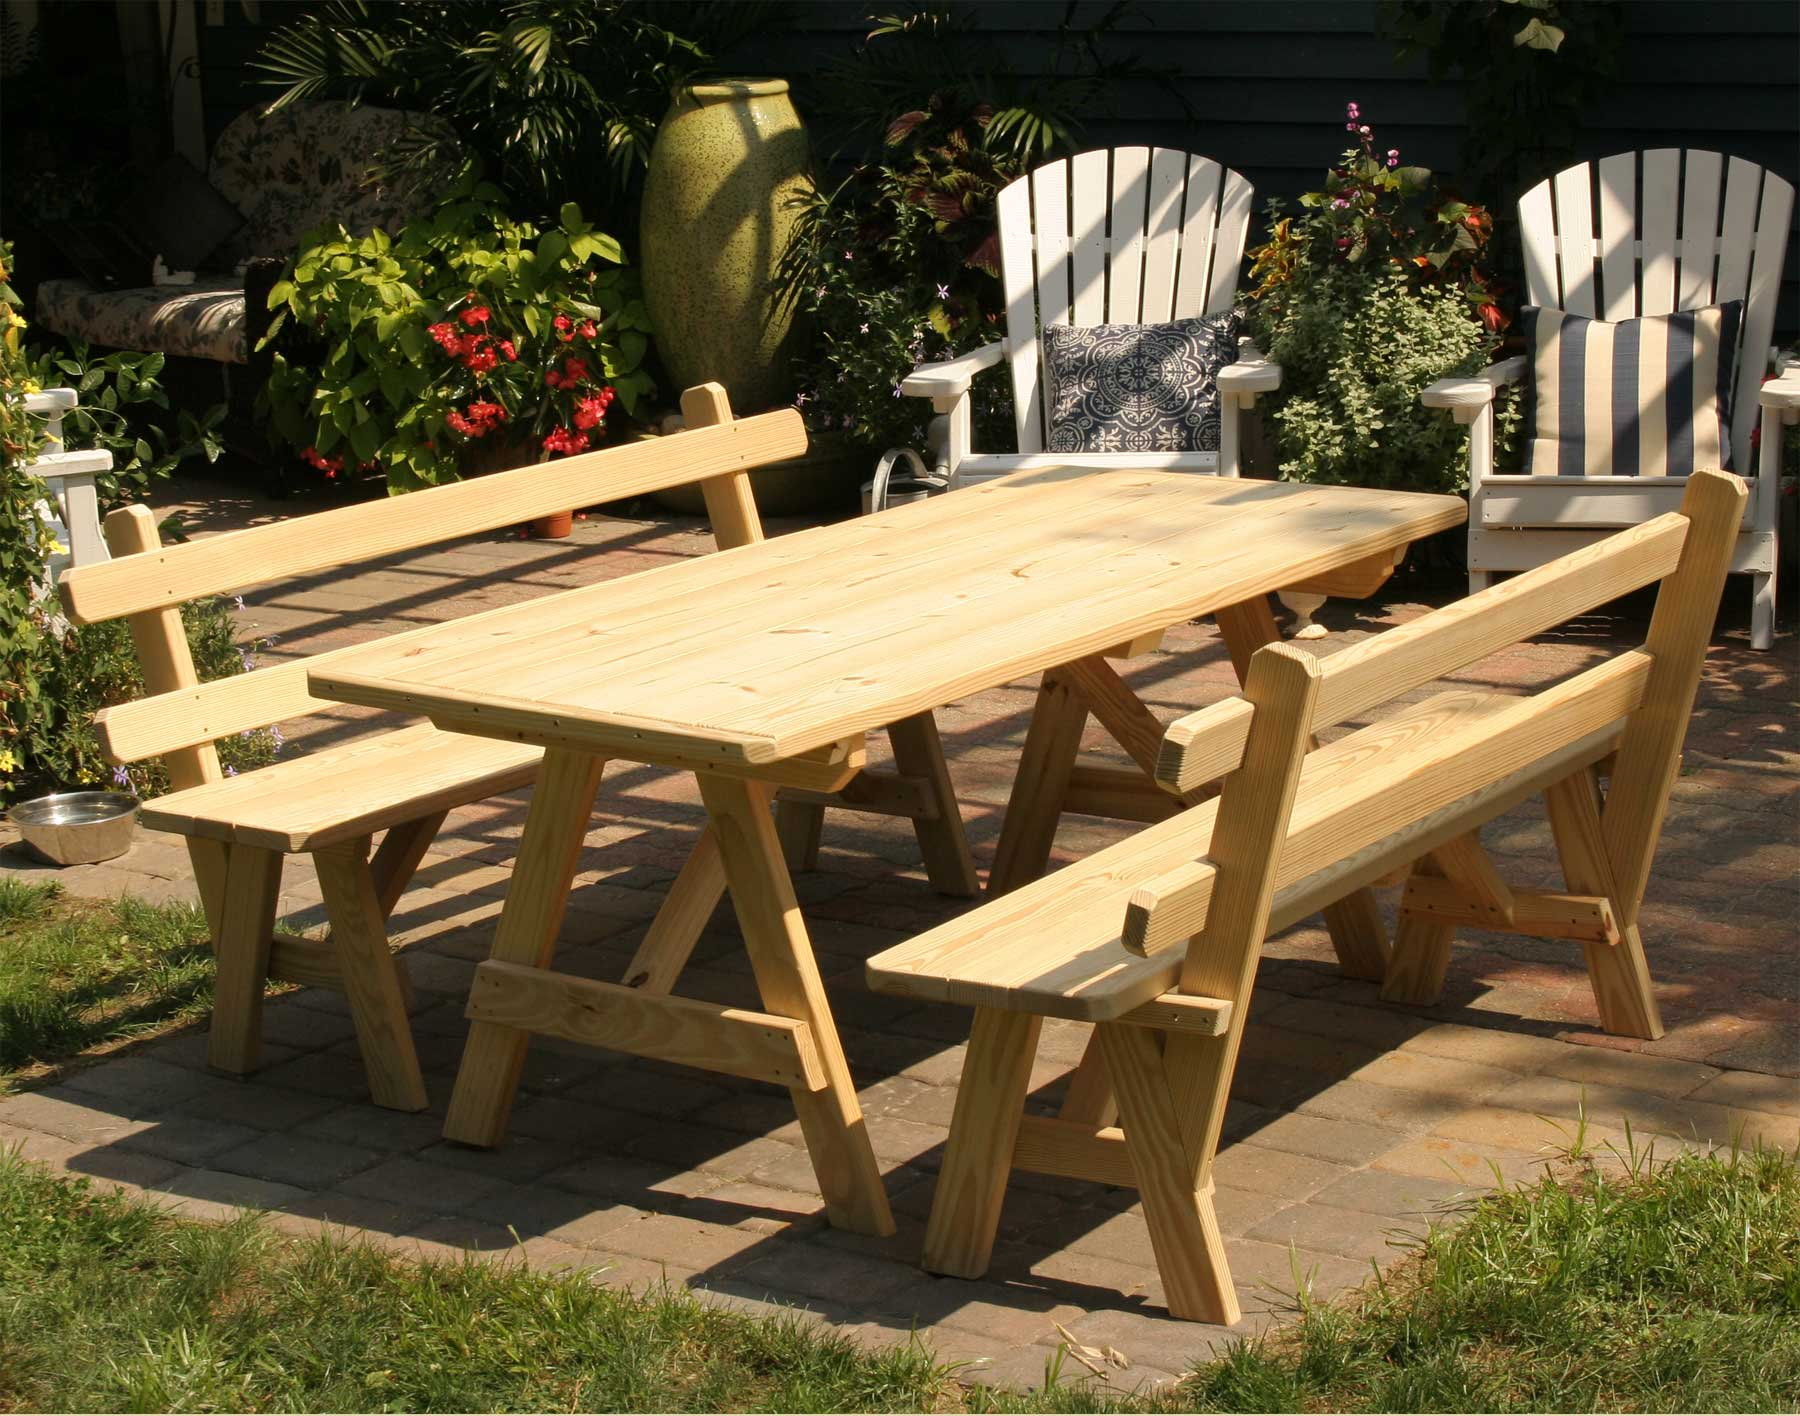 Instructions On How To Build A Picnic Table With Separate Benches Online Woodworking Plans